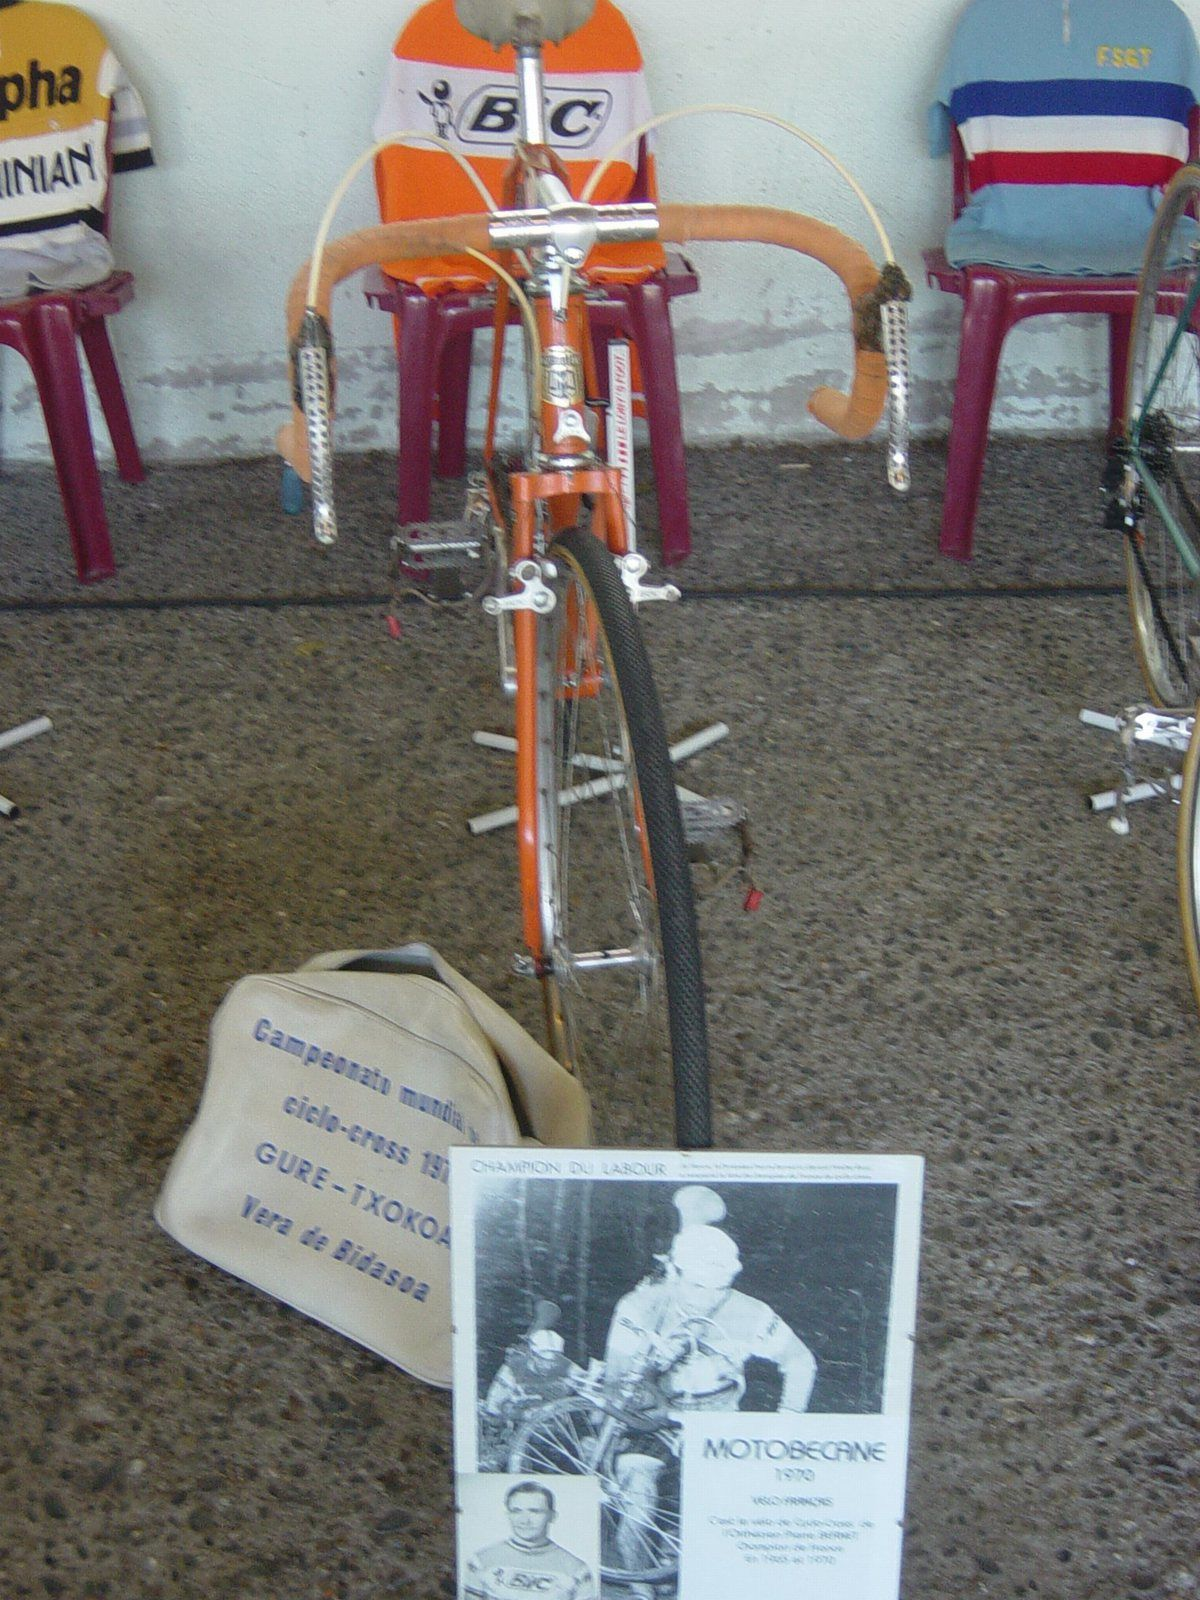 Vélo de cyclo-cross Motobécane 1970, ayant appartenu à P.Bernet, né le 08/04/1939 à Orthez (64), champion de France de cyclo-cross en 1965 et 1970.